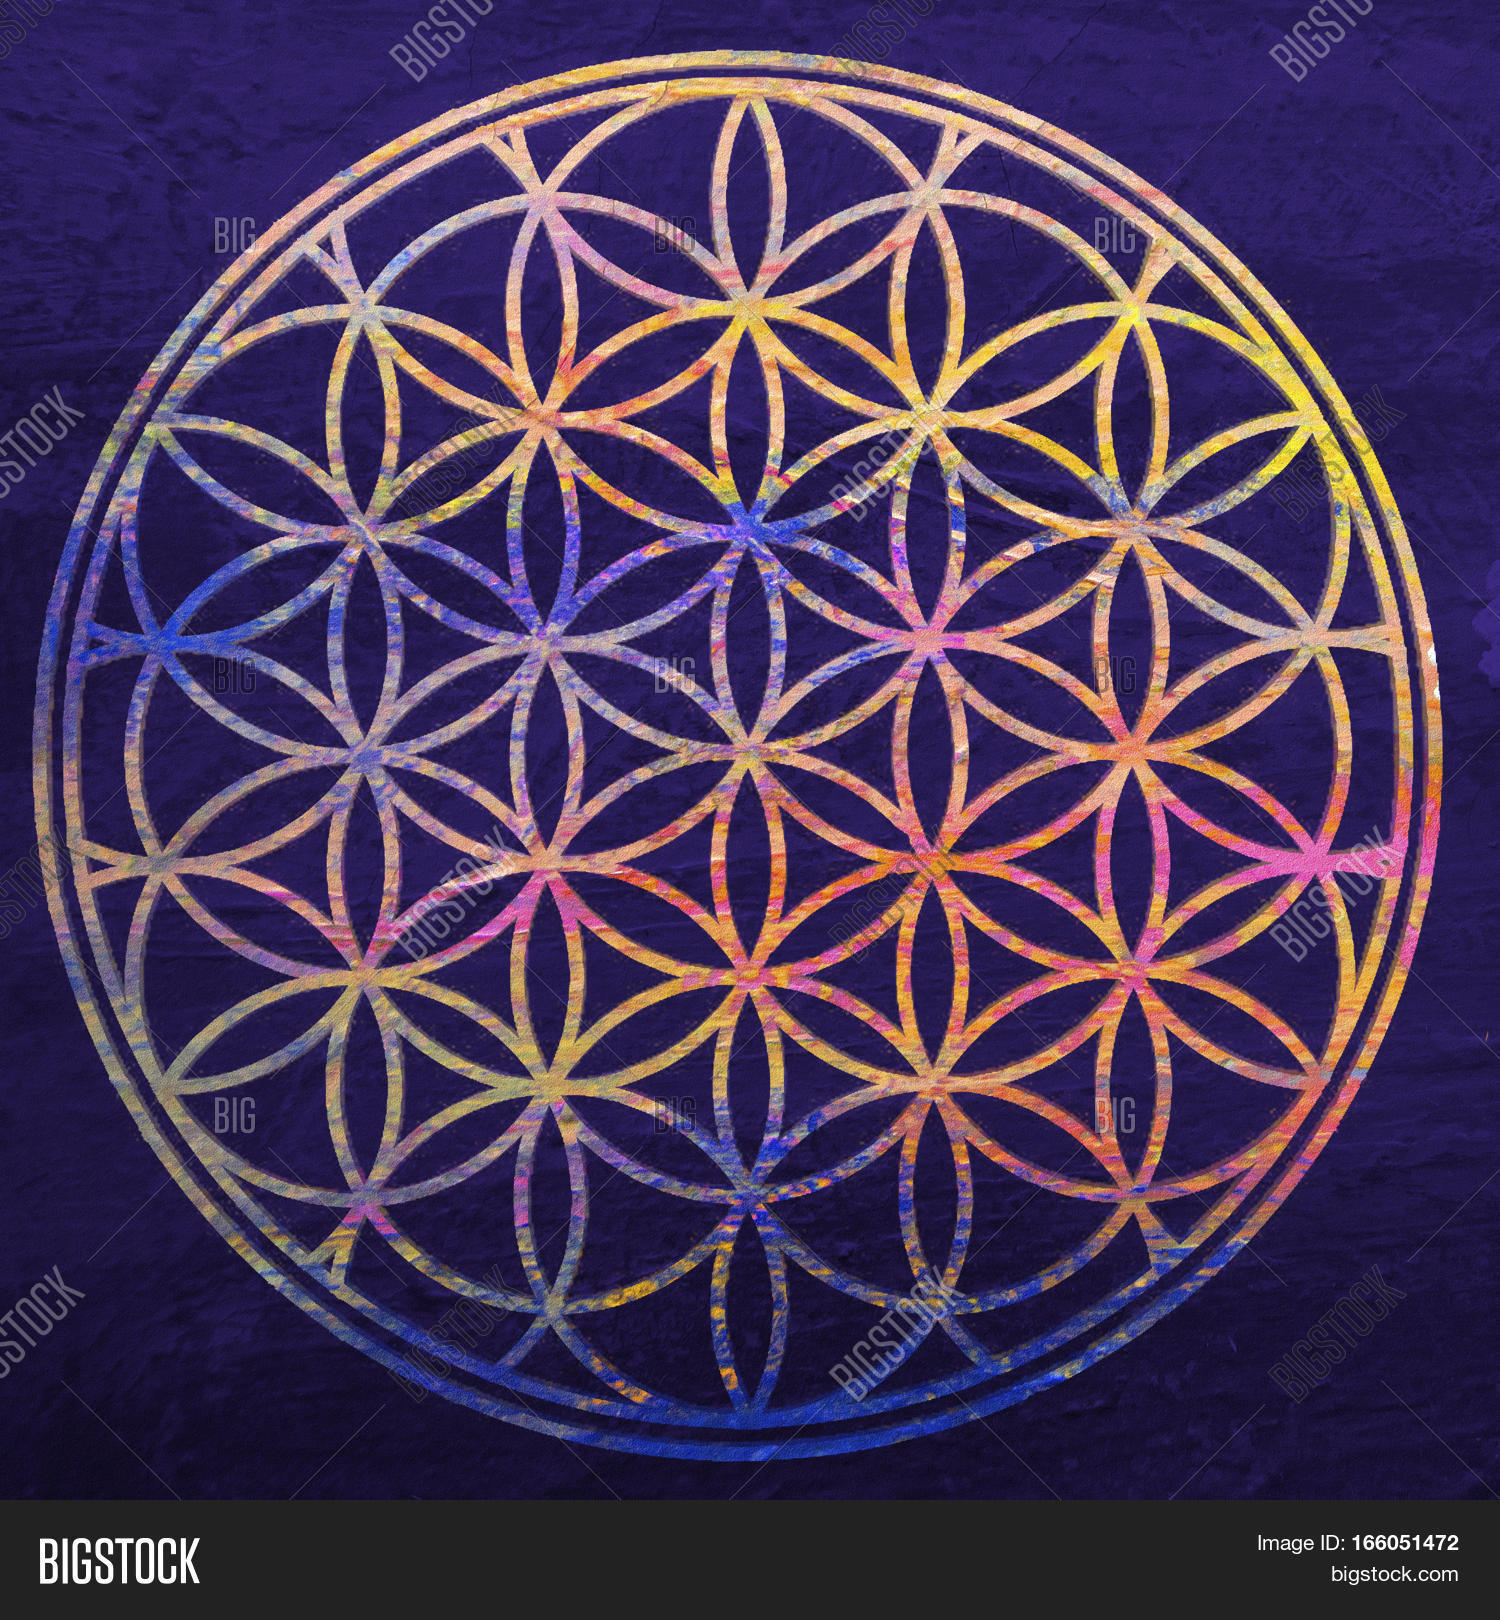 Flower life sacred image photo free trial bigstock flower of life sacred geometry lotus flower mandala ornament esoteric or spiritual izmirmasajfo